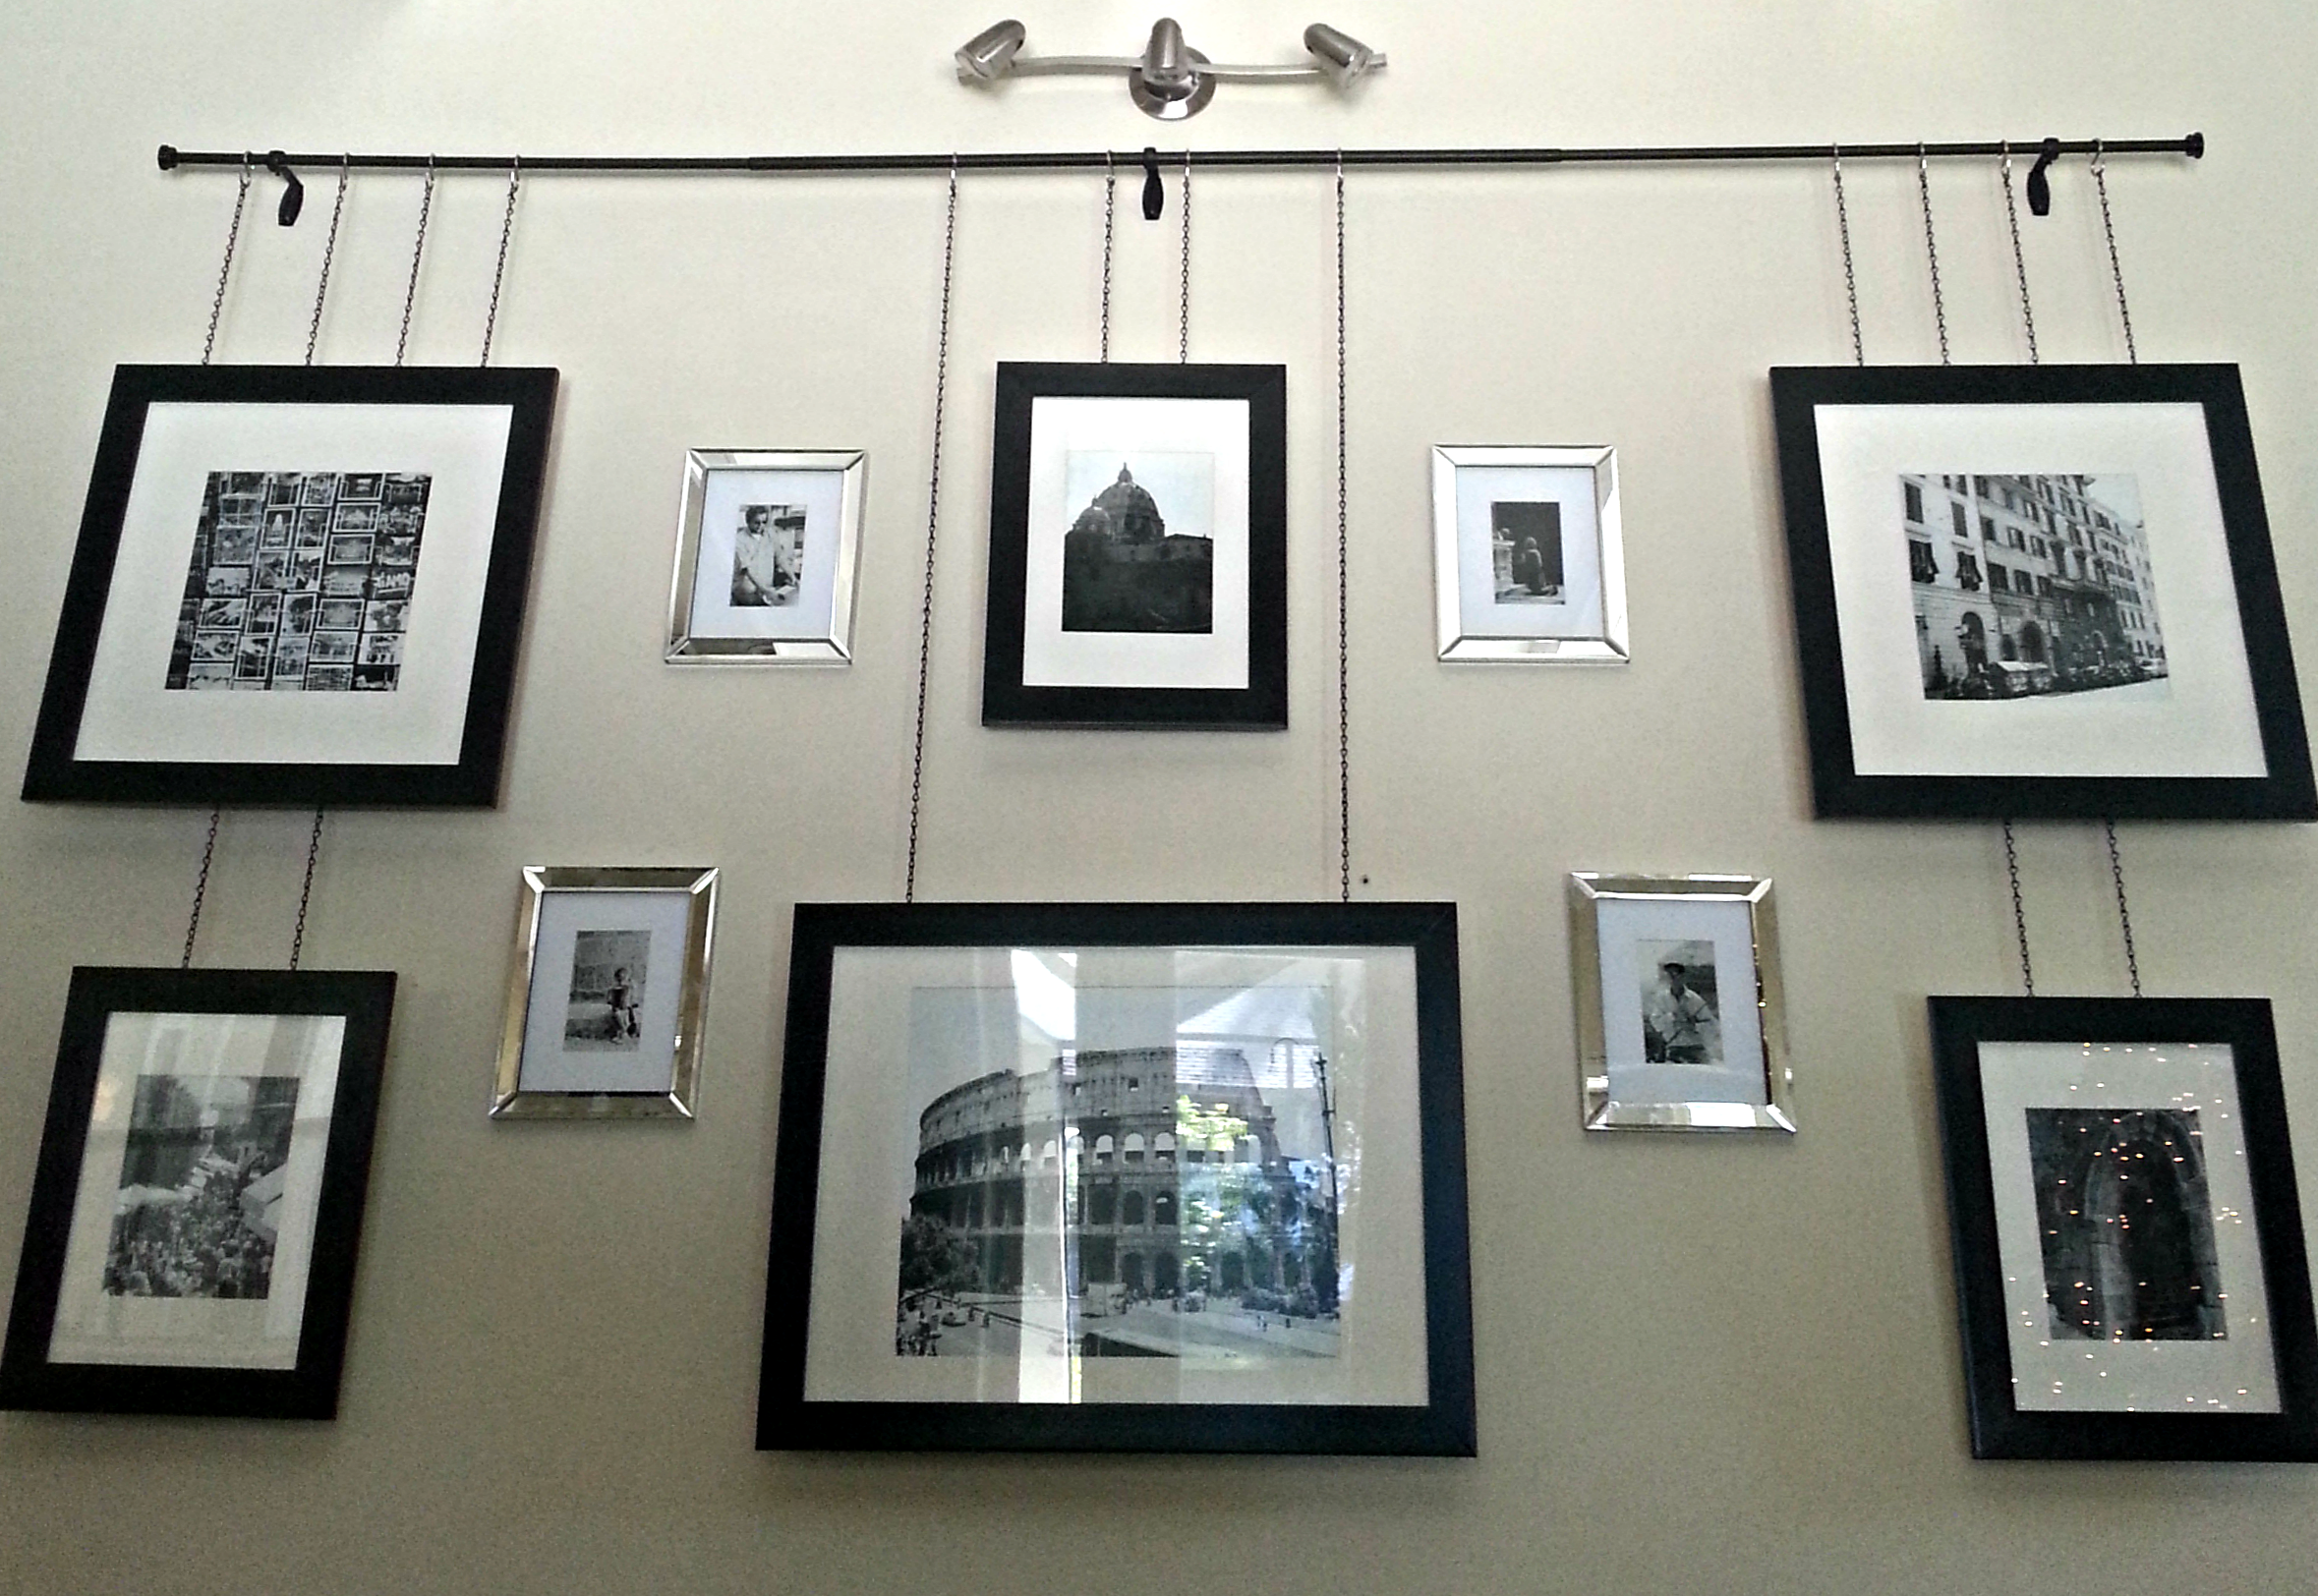 Gallery Frames Hanging By Chain From A Curtain Rod With